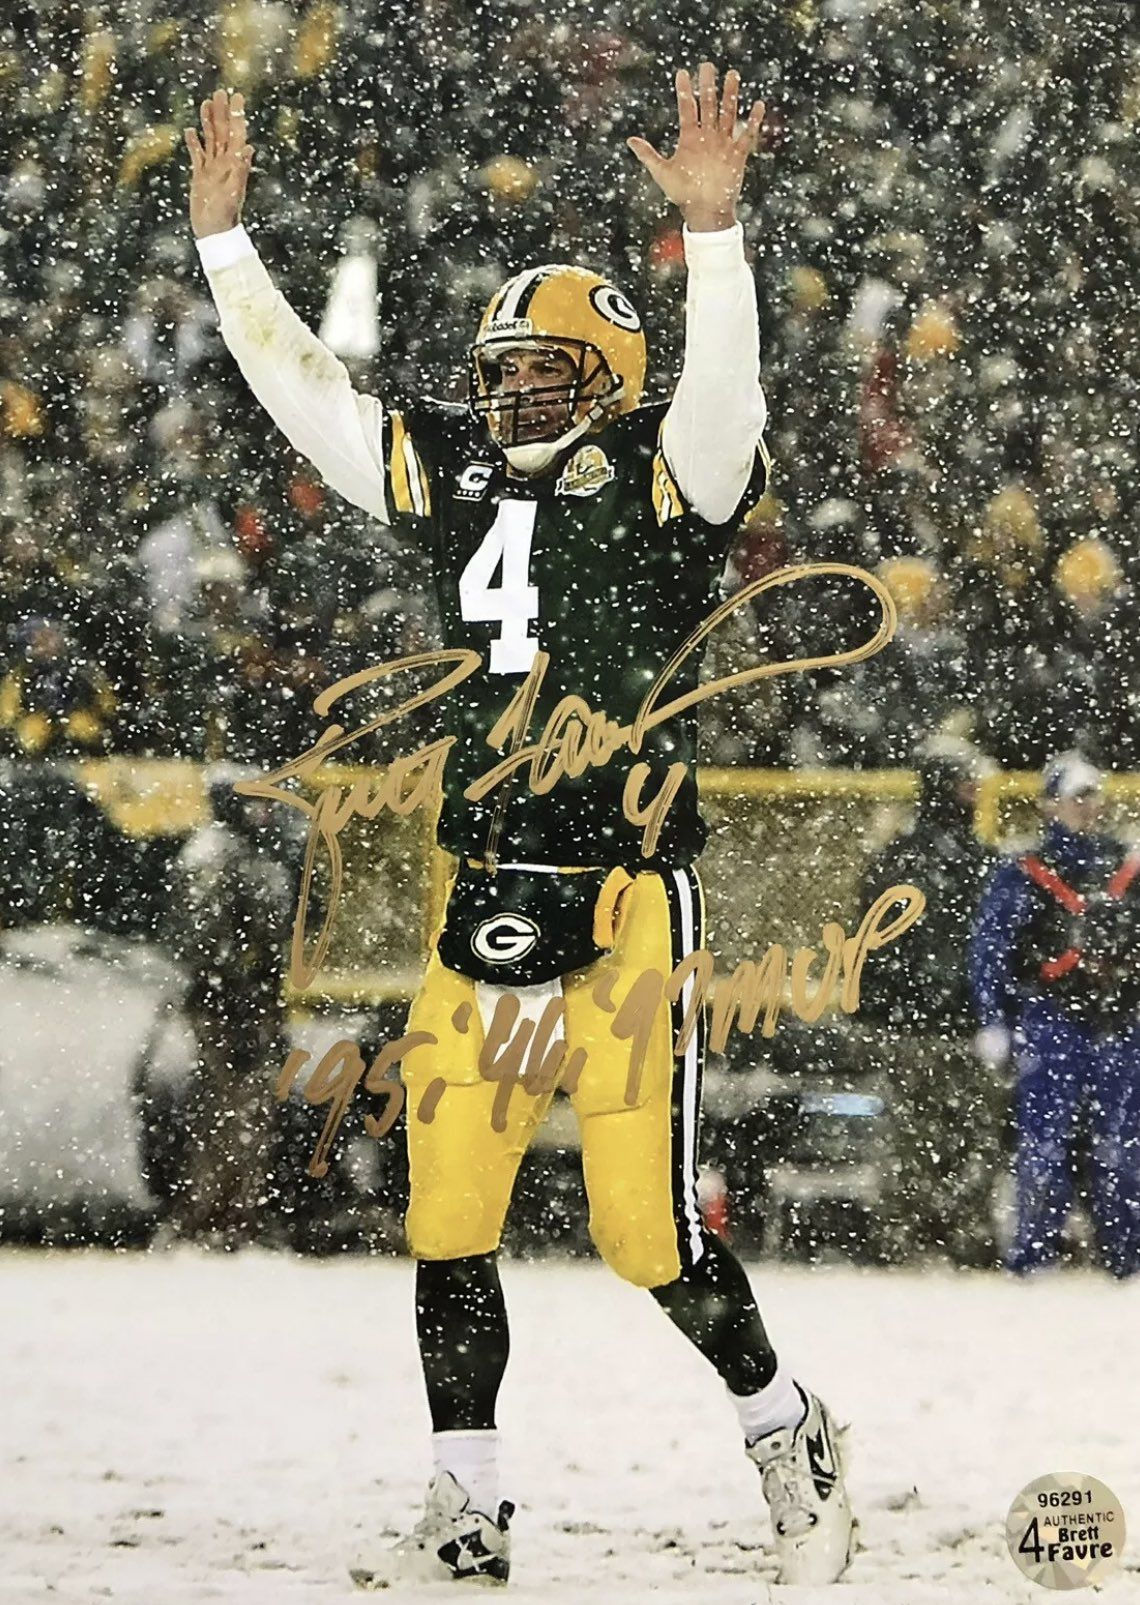 Limited Fake Aaron Rodgers On Twitter Limited Fake Aaron Rodgers On Twitter Have These 2 Coming In P Green Bay Packers Signs Green Bay Packers 8x10 Photo